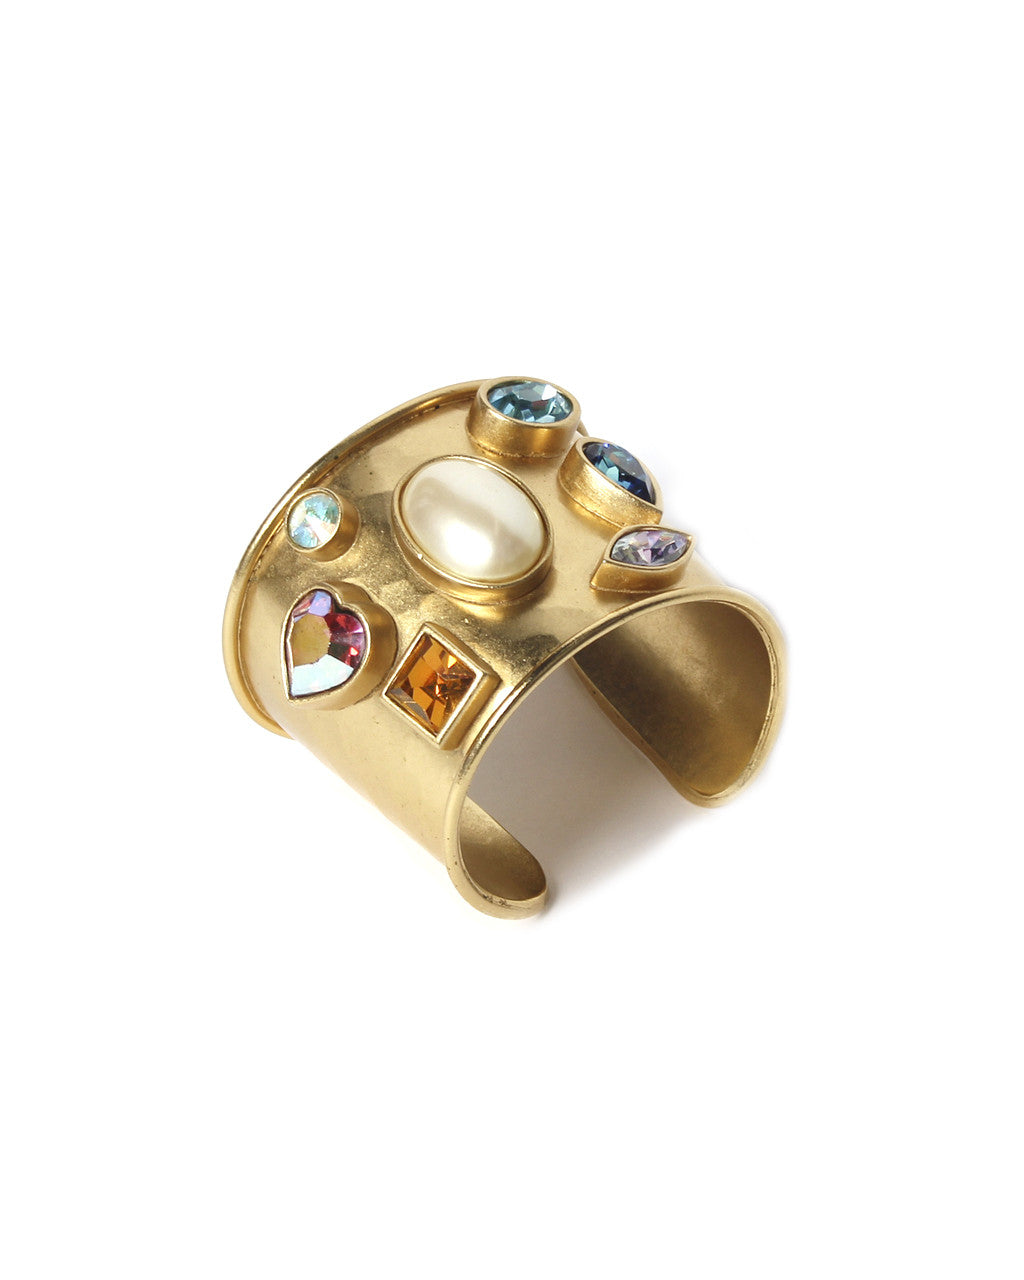 Yves Saint Laurent Gold Cuff with Stones